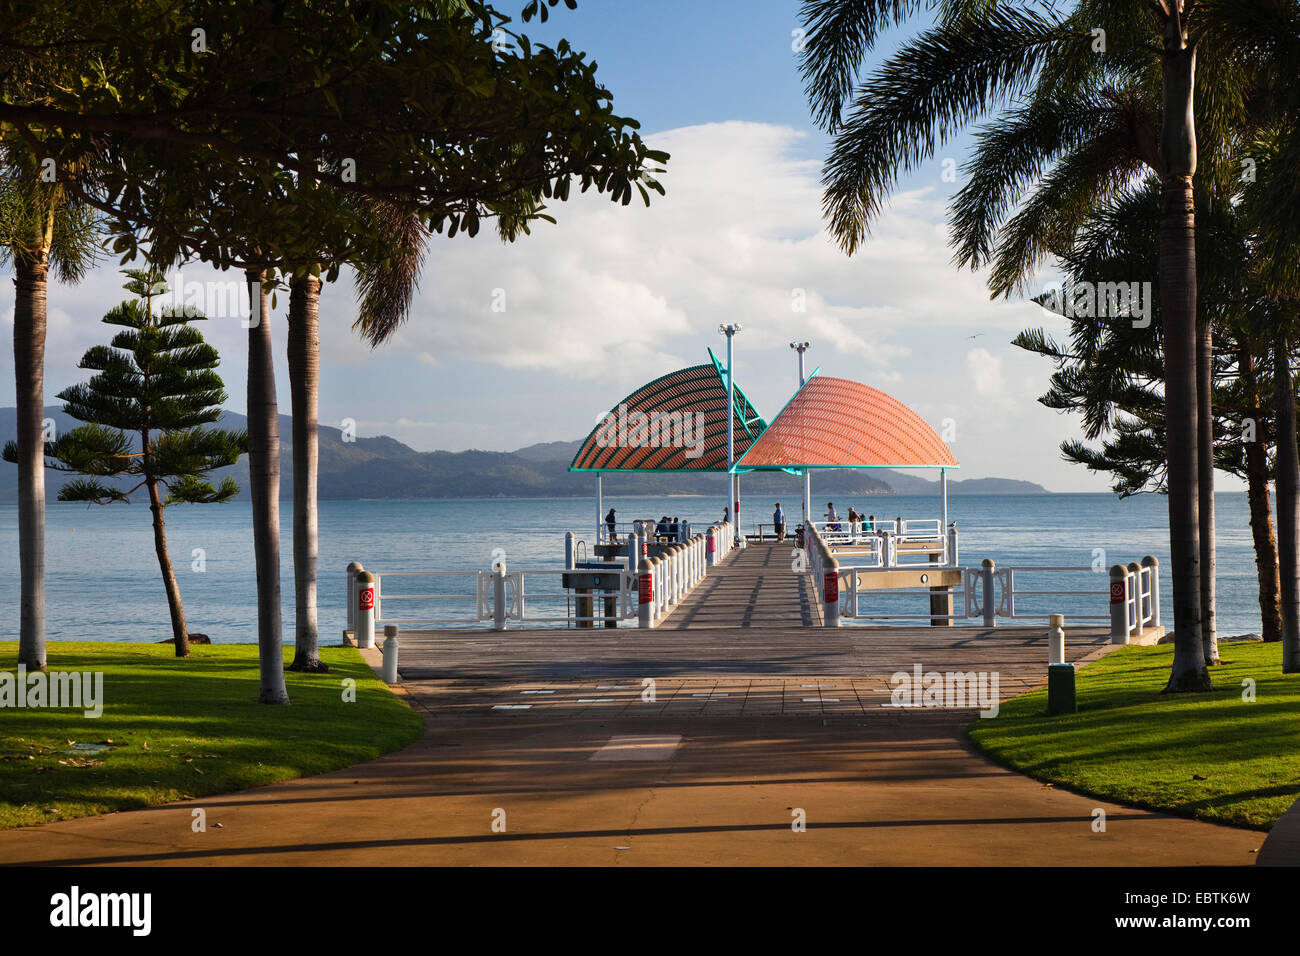 The Strand, Australia, Queensland, Townsville - Stock Image